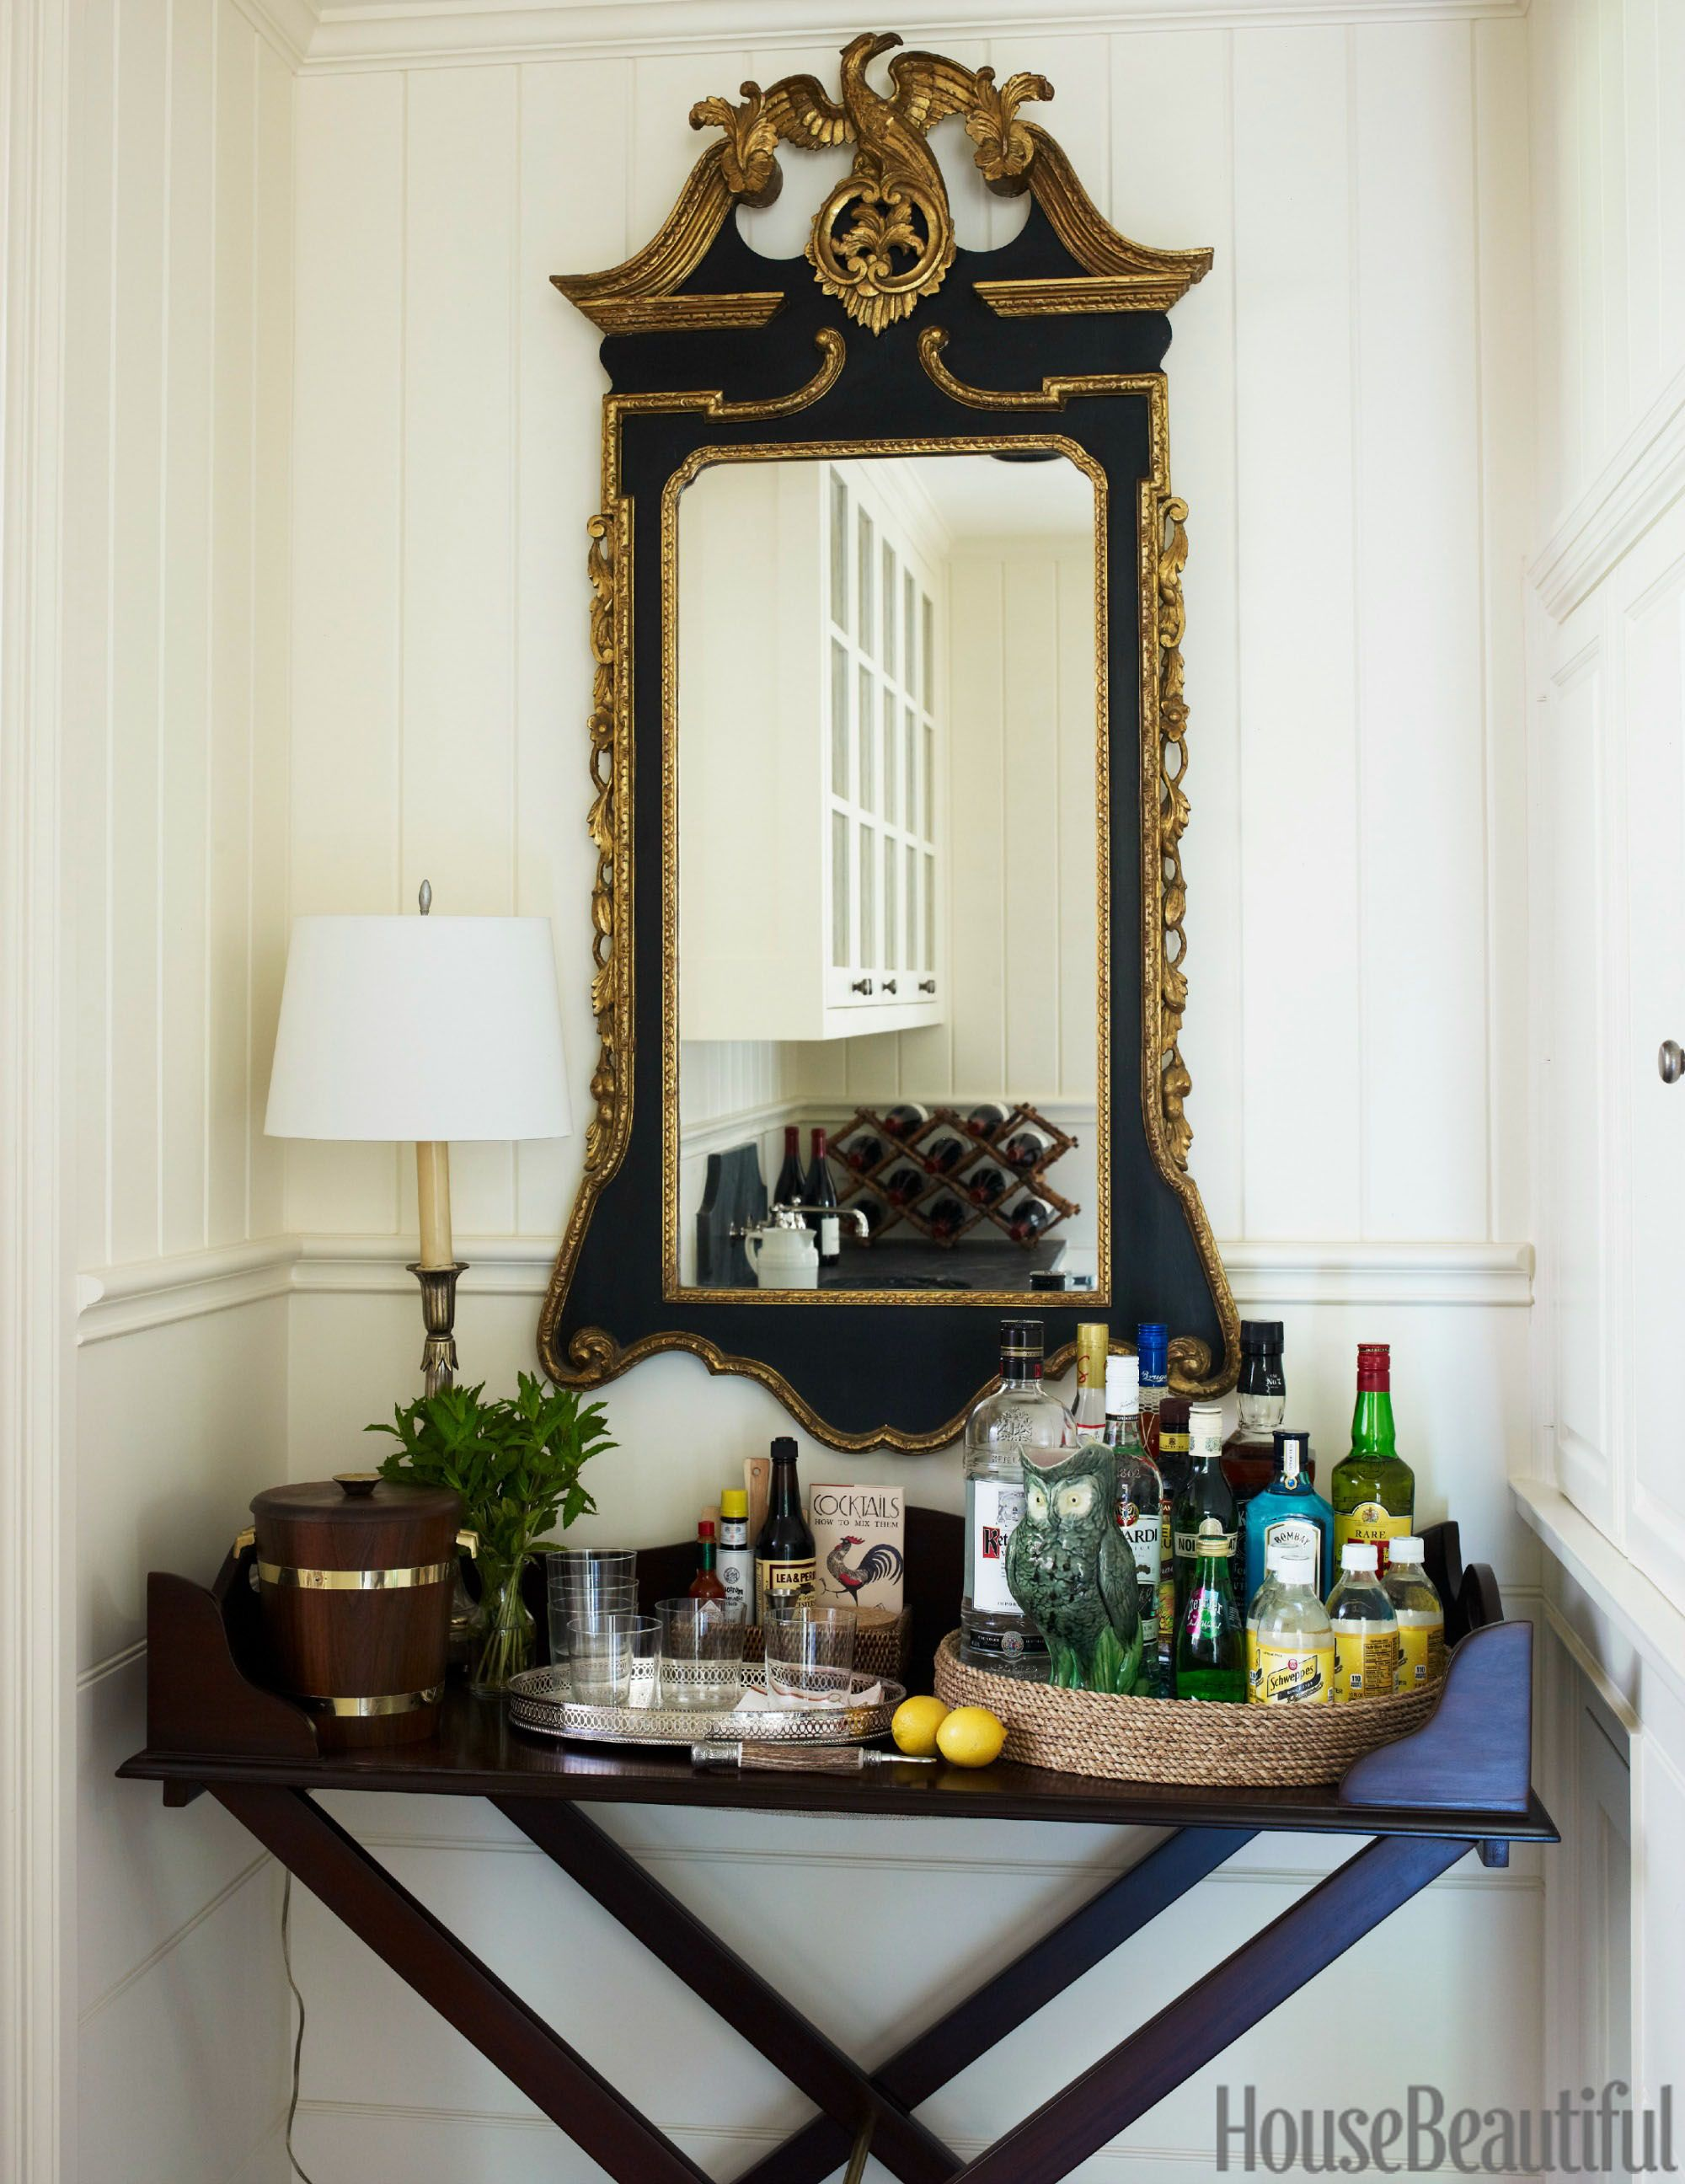 Charmant A Traditional Georgian Manor Designed For A Southern Gentleman | Small Bars,  Trays And Bar